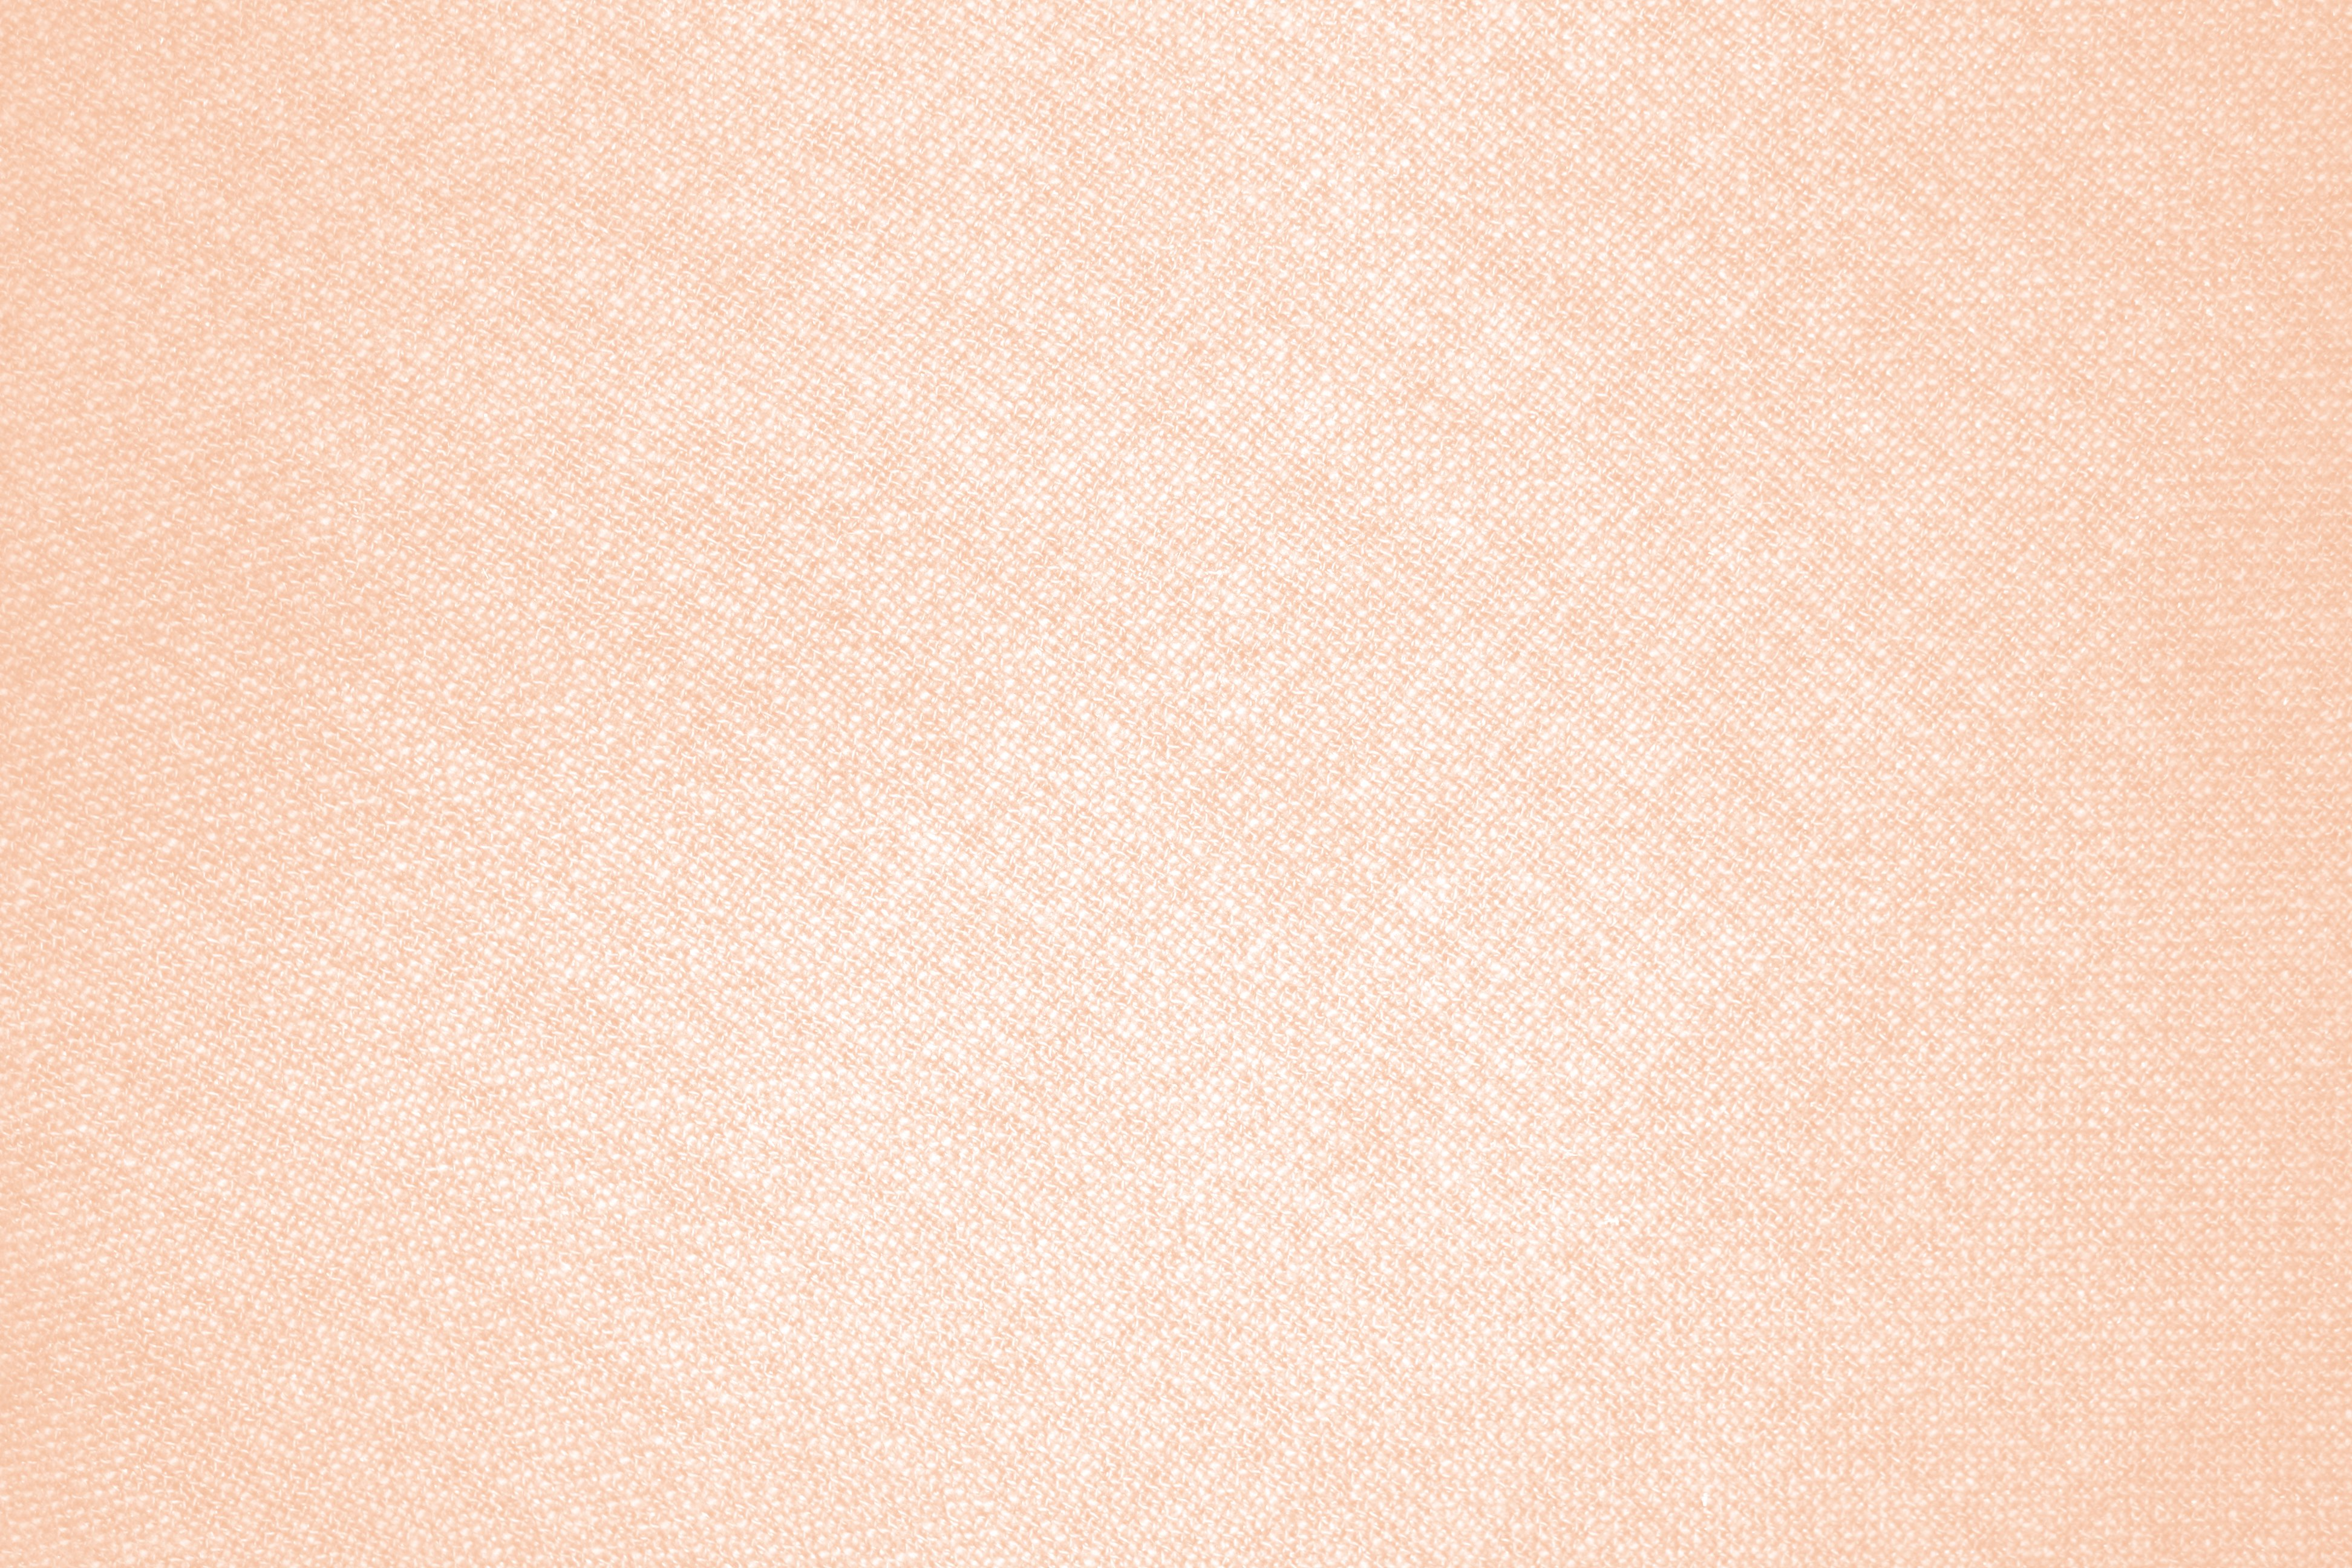 peach colored fabric texture picture free photograph photos